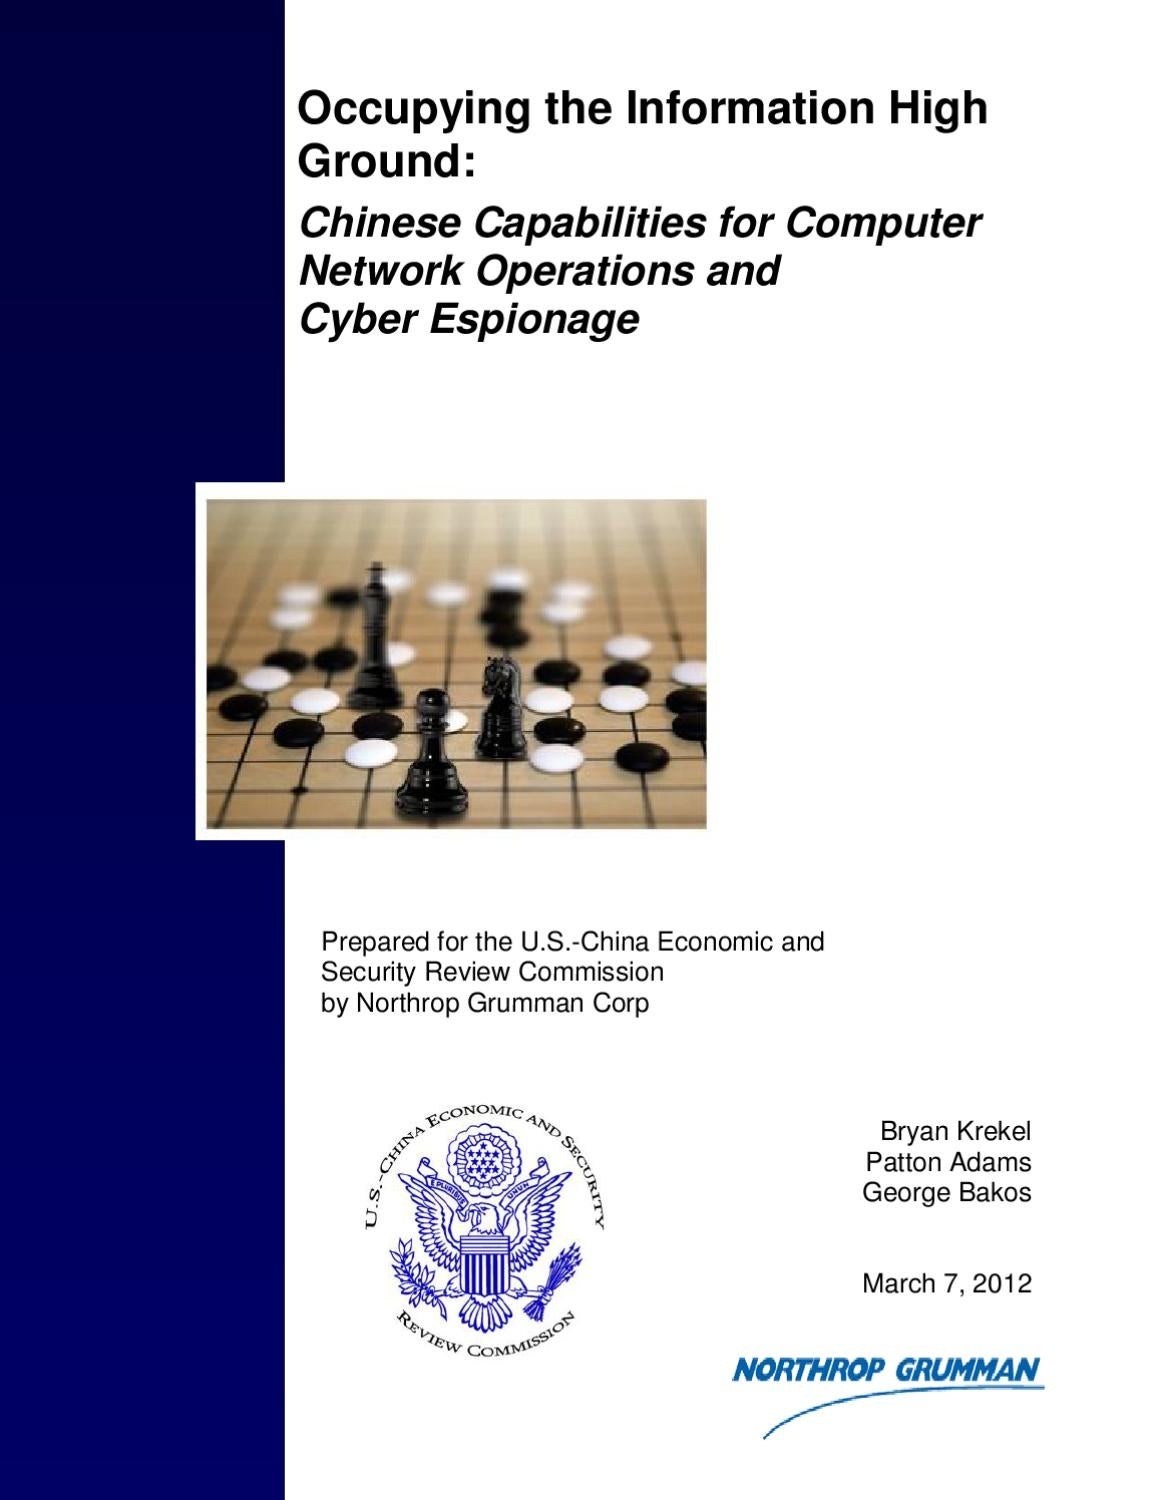 Occupying the information high ground: Chinese capabilities for cyber  espionage